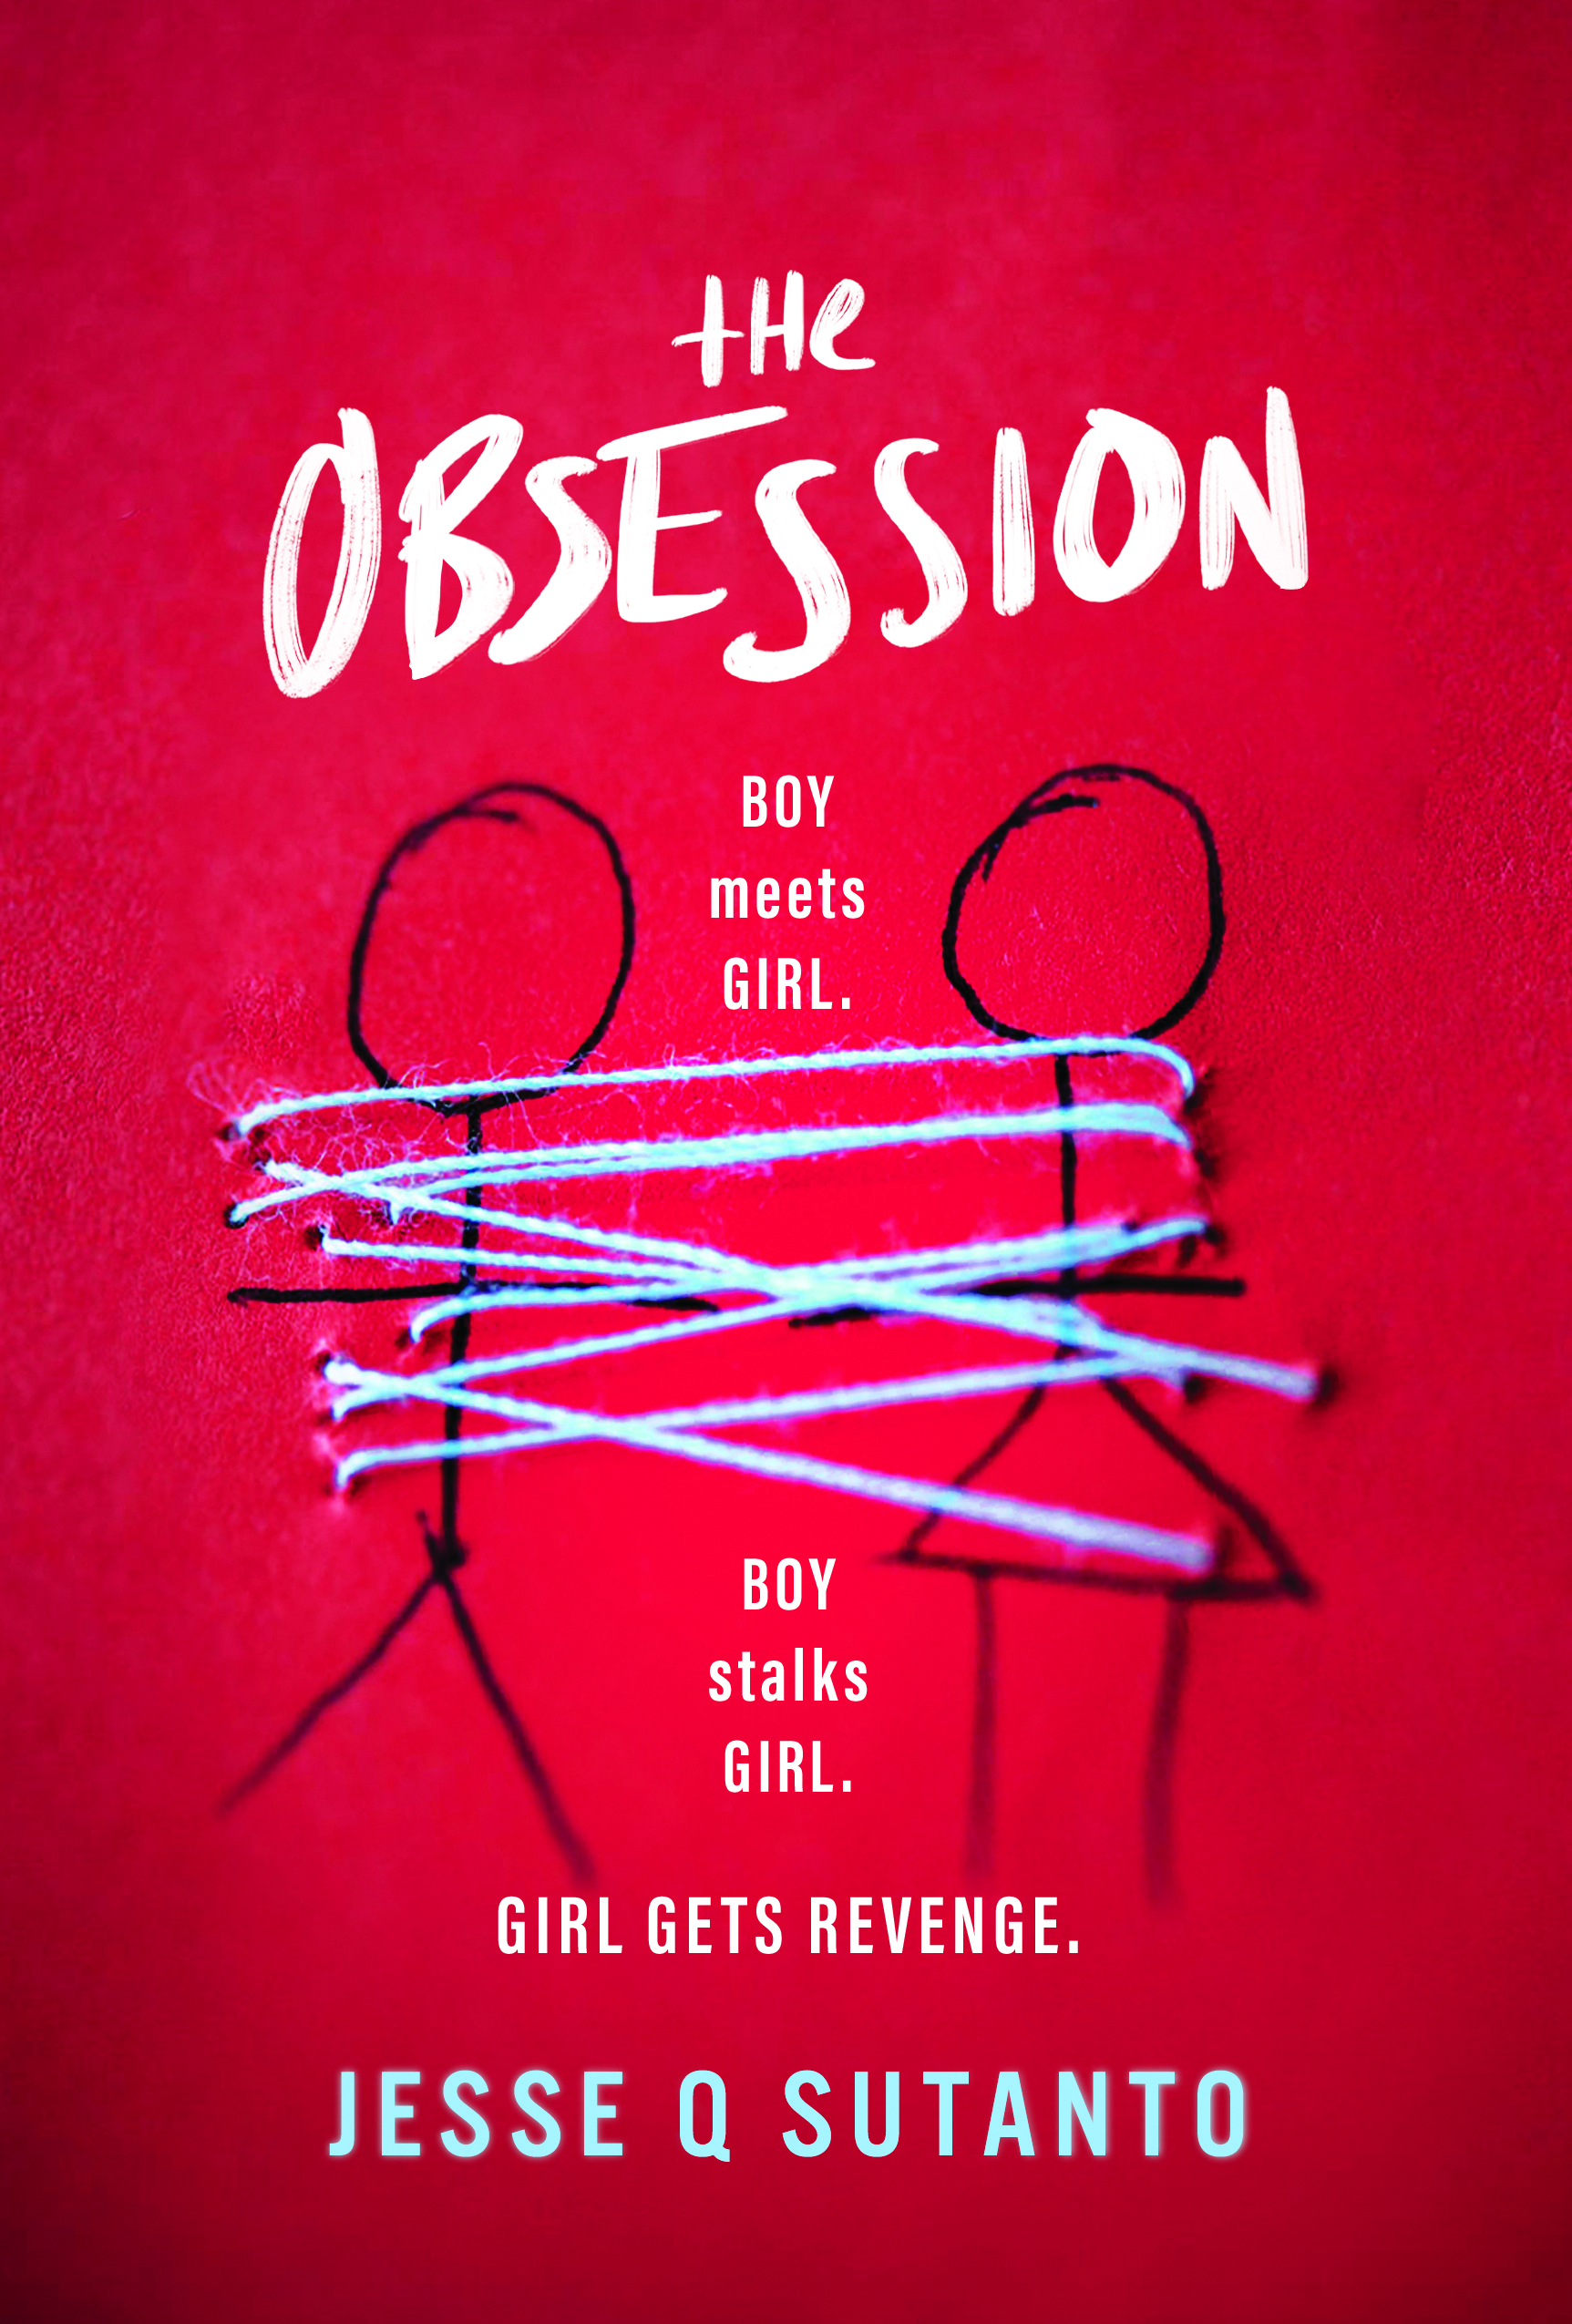 The Obsession by Jesse Q. Sutanto